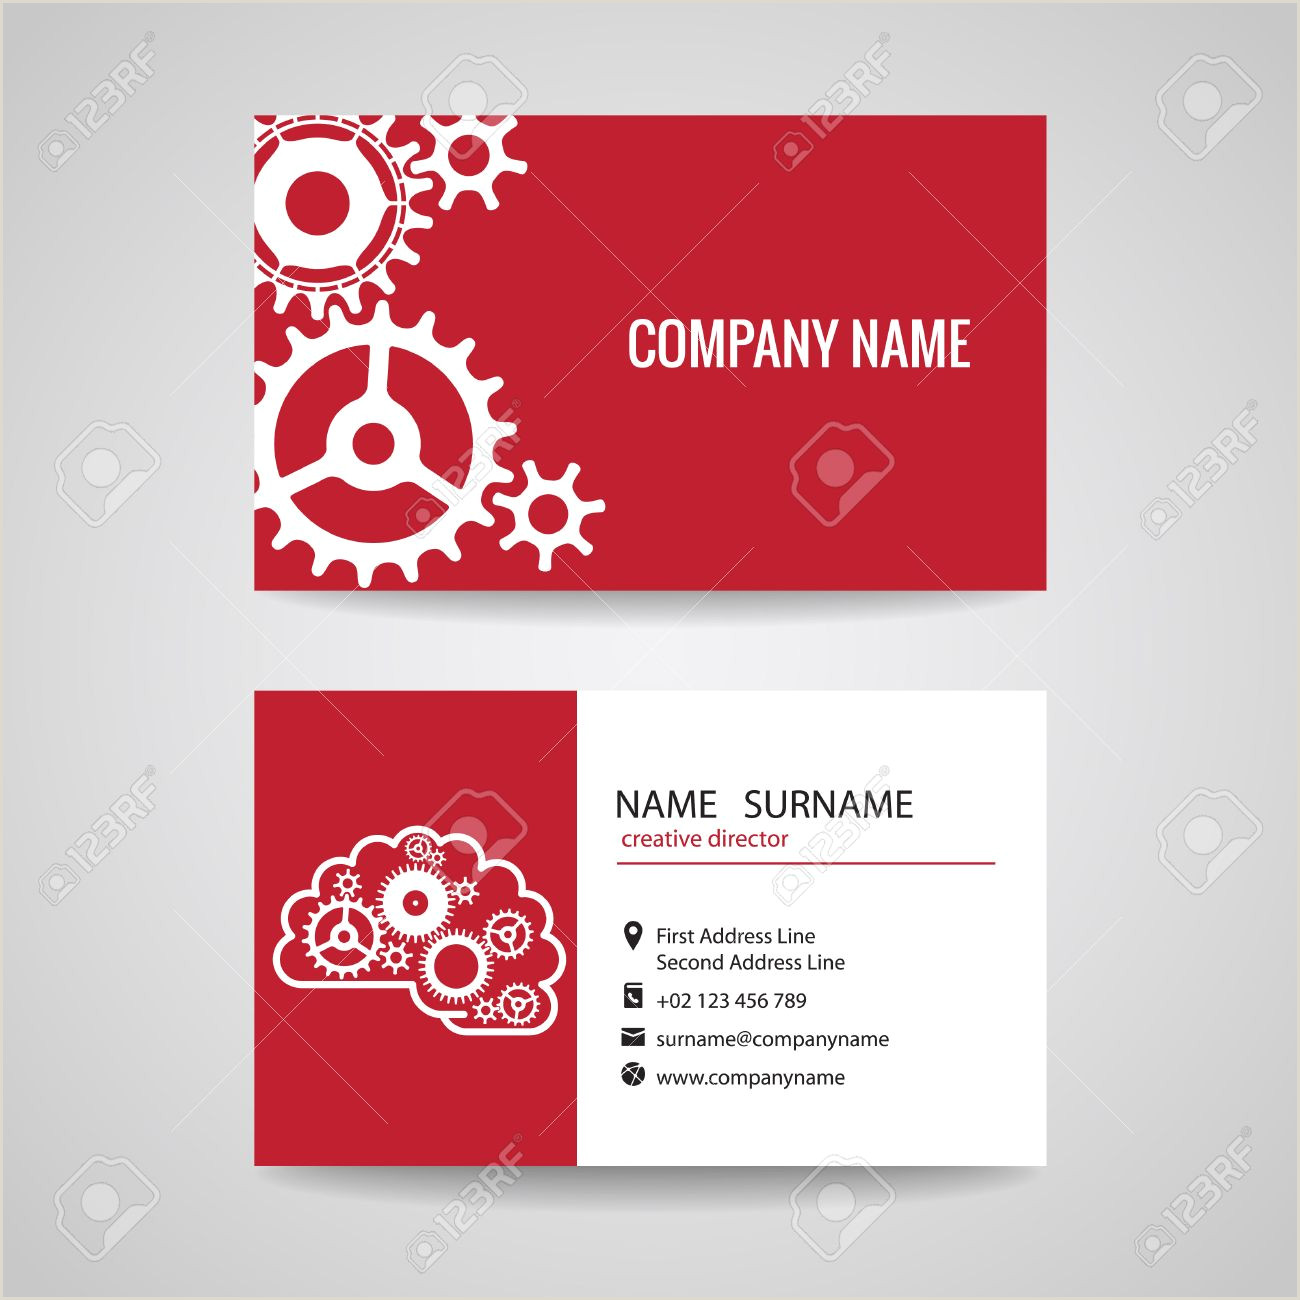 Unique Business Cards Engineering Business Card Gear Idea For Engineer And Mechanical